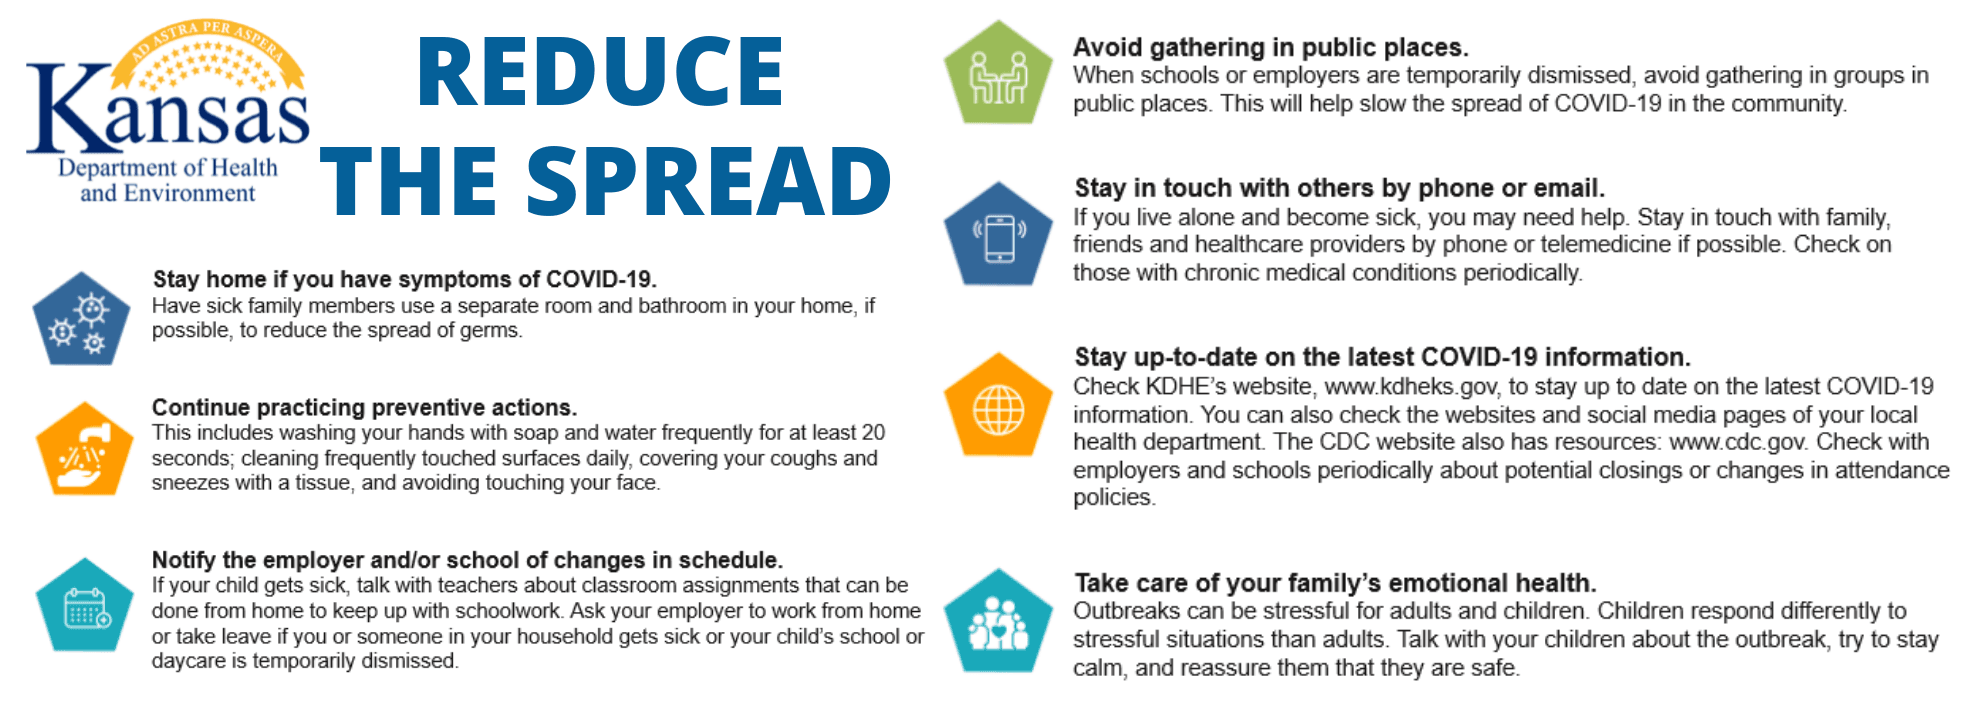 TIPS TO REDUCE THE SPREAD OF COVID-19